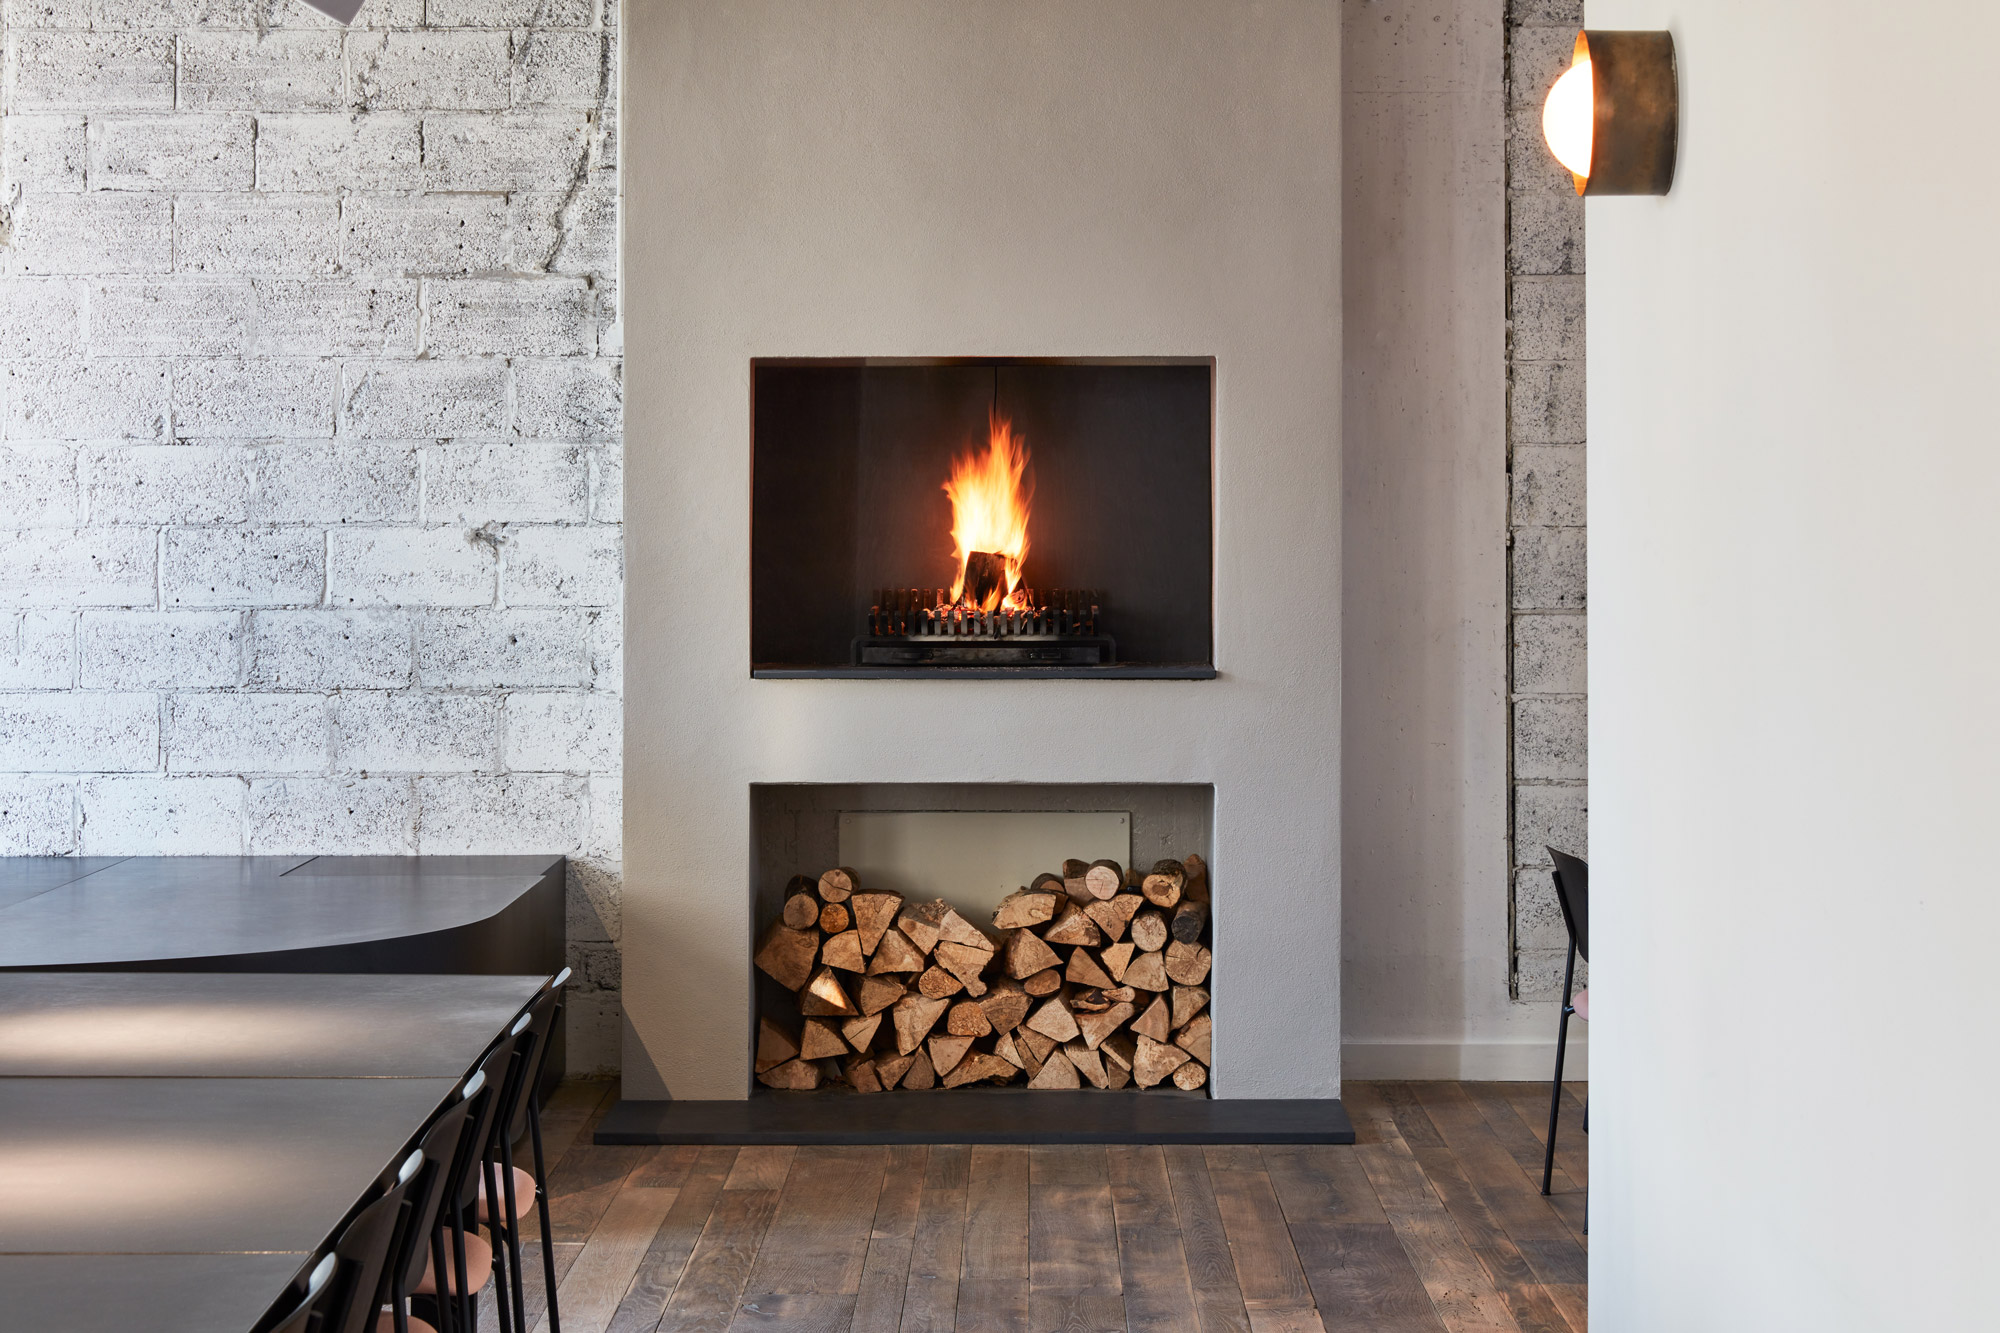 Concrete fireplace with log storage below